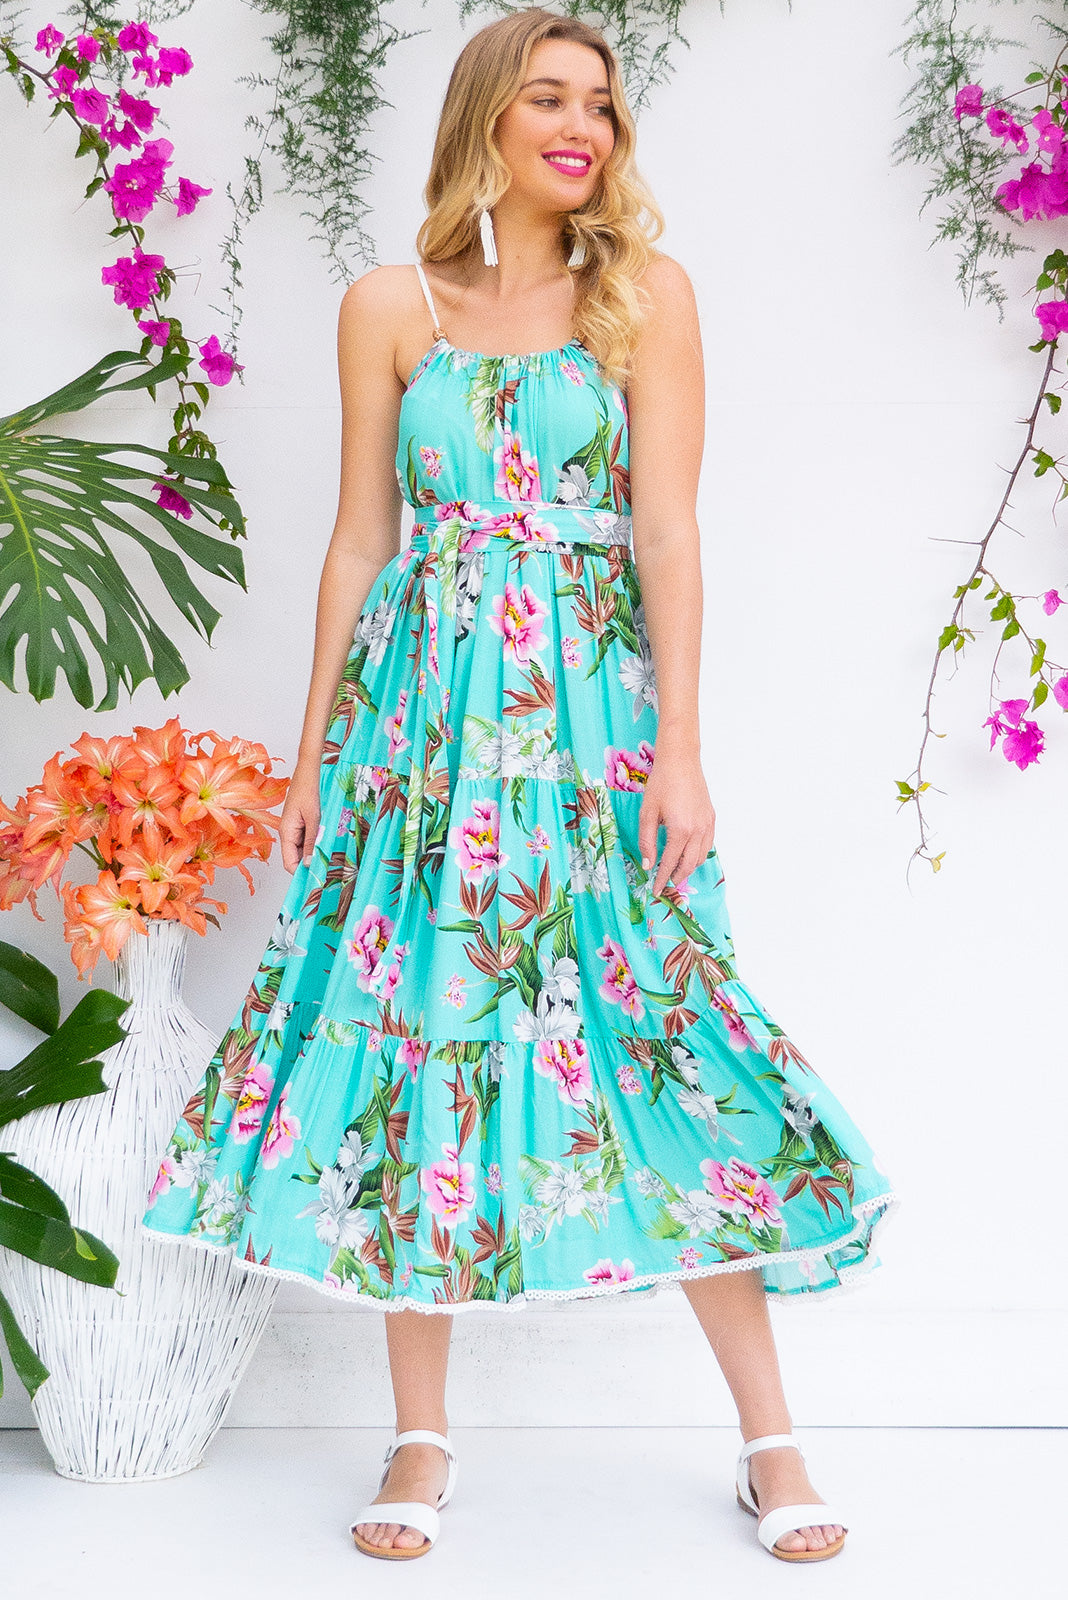 Lulu Loves Tropical Turquoise Maxi length rayon tiered dress with a adjustable neckline, side pockets in a gorgeous bright aqua green colour with tropical inspired floral print